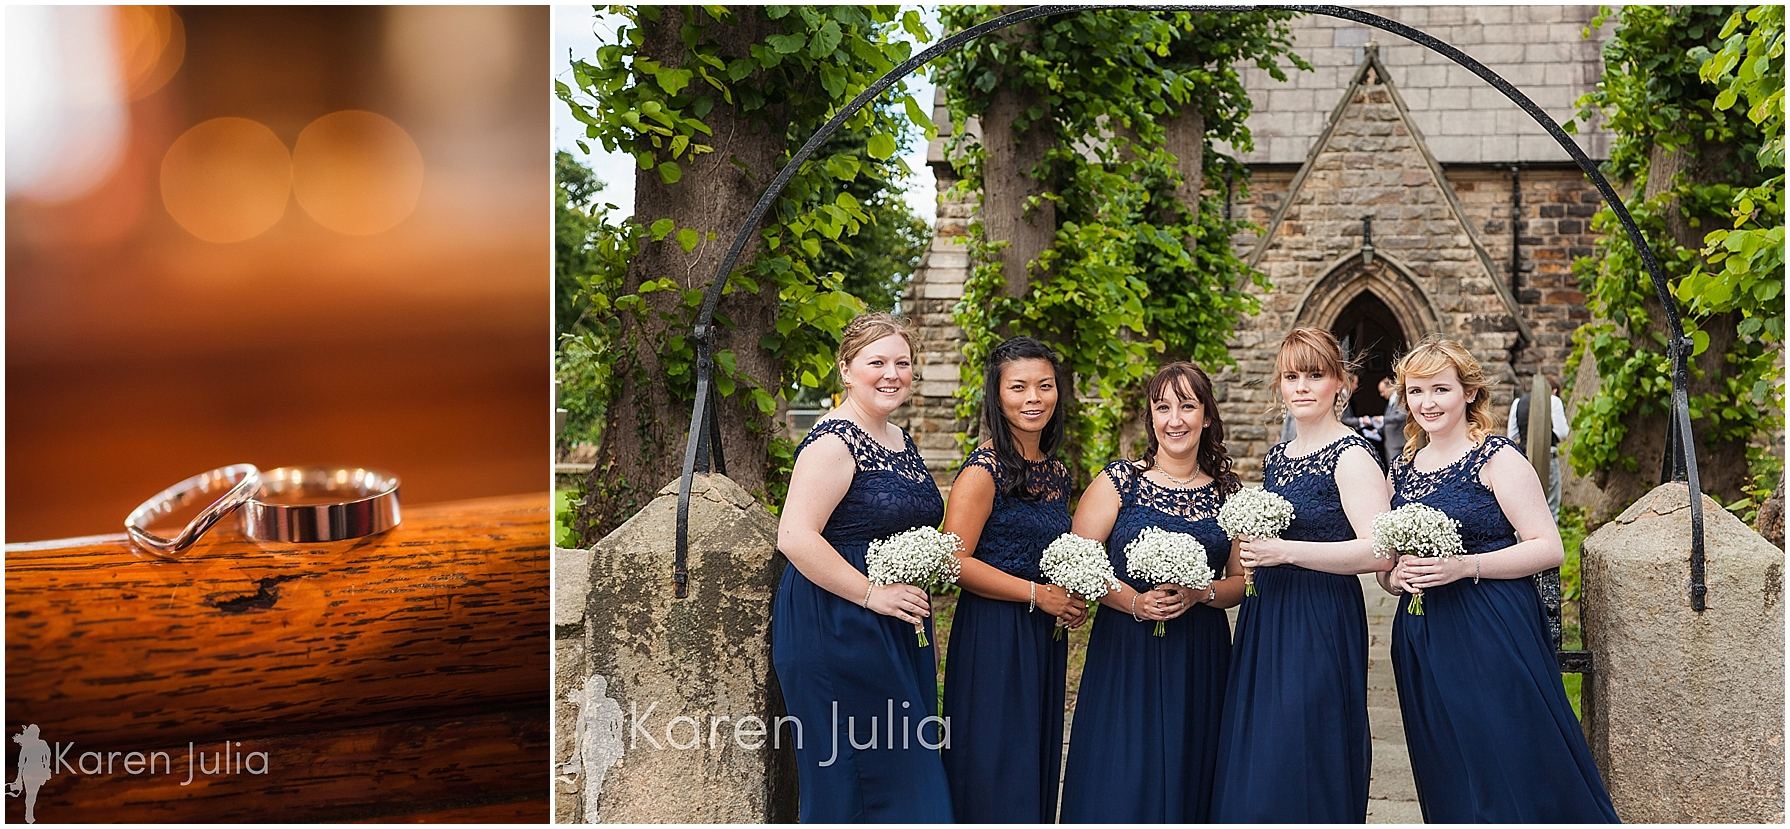 Cheshire Wedding Photography Smallwood bridesmaids photo